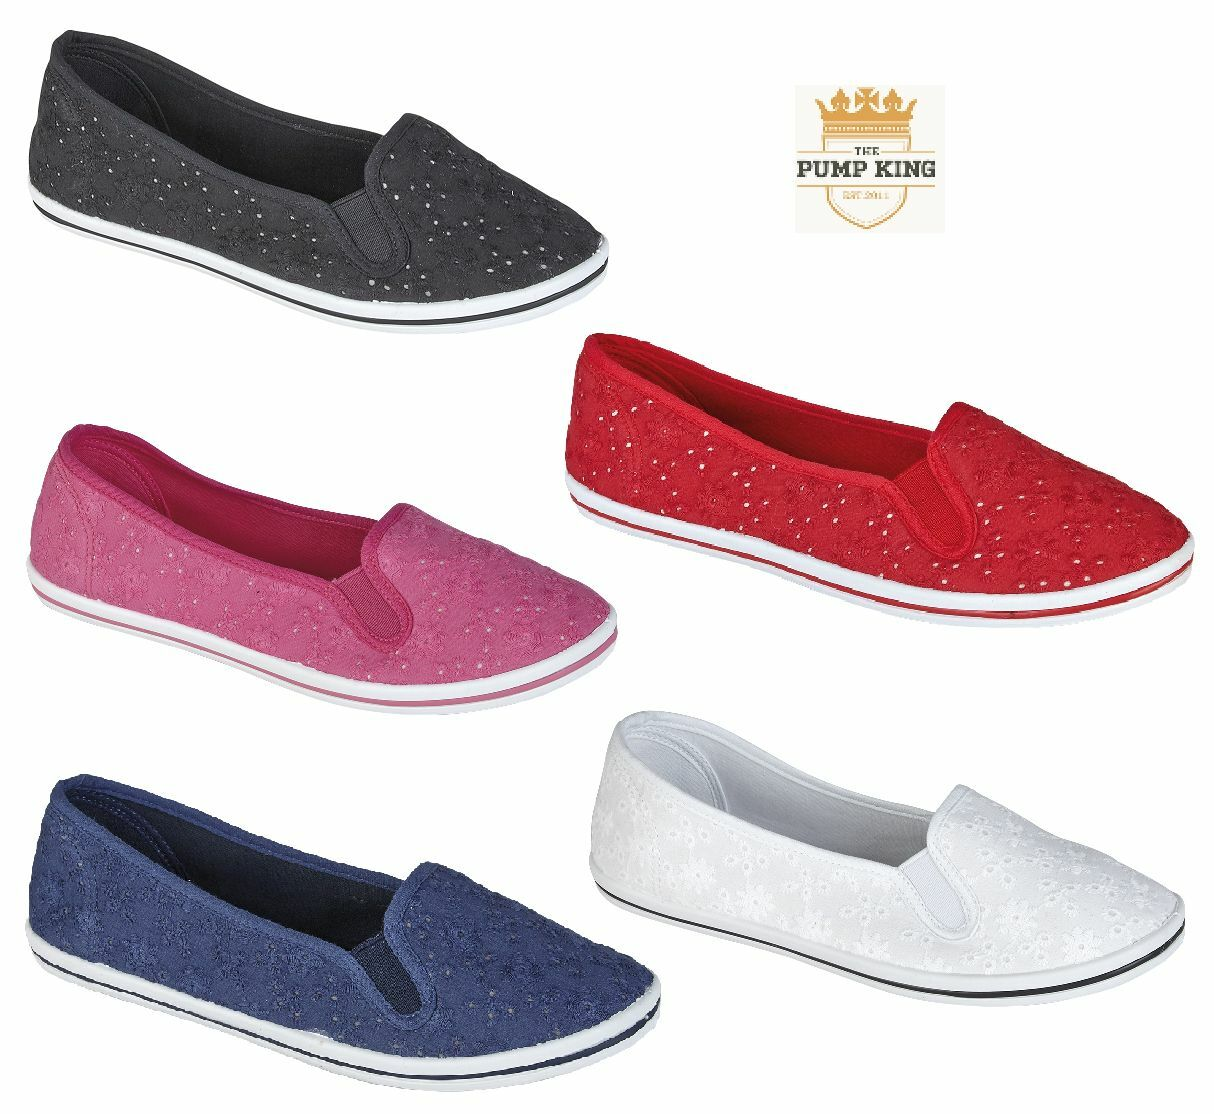 NEW LADIES WOMENS SLIP ON CASUAL HOLIDAY COLOUR CANVAS PUMP PLIMSOLL SHOES